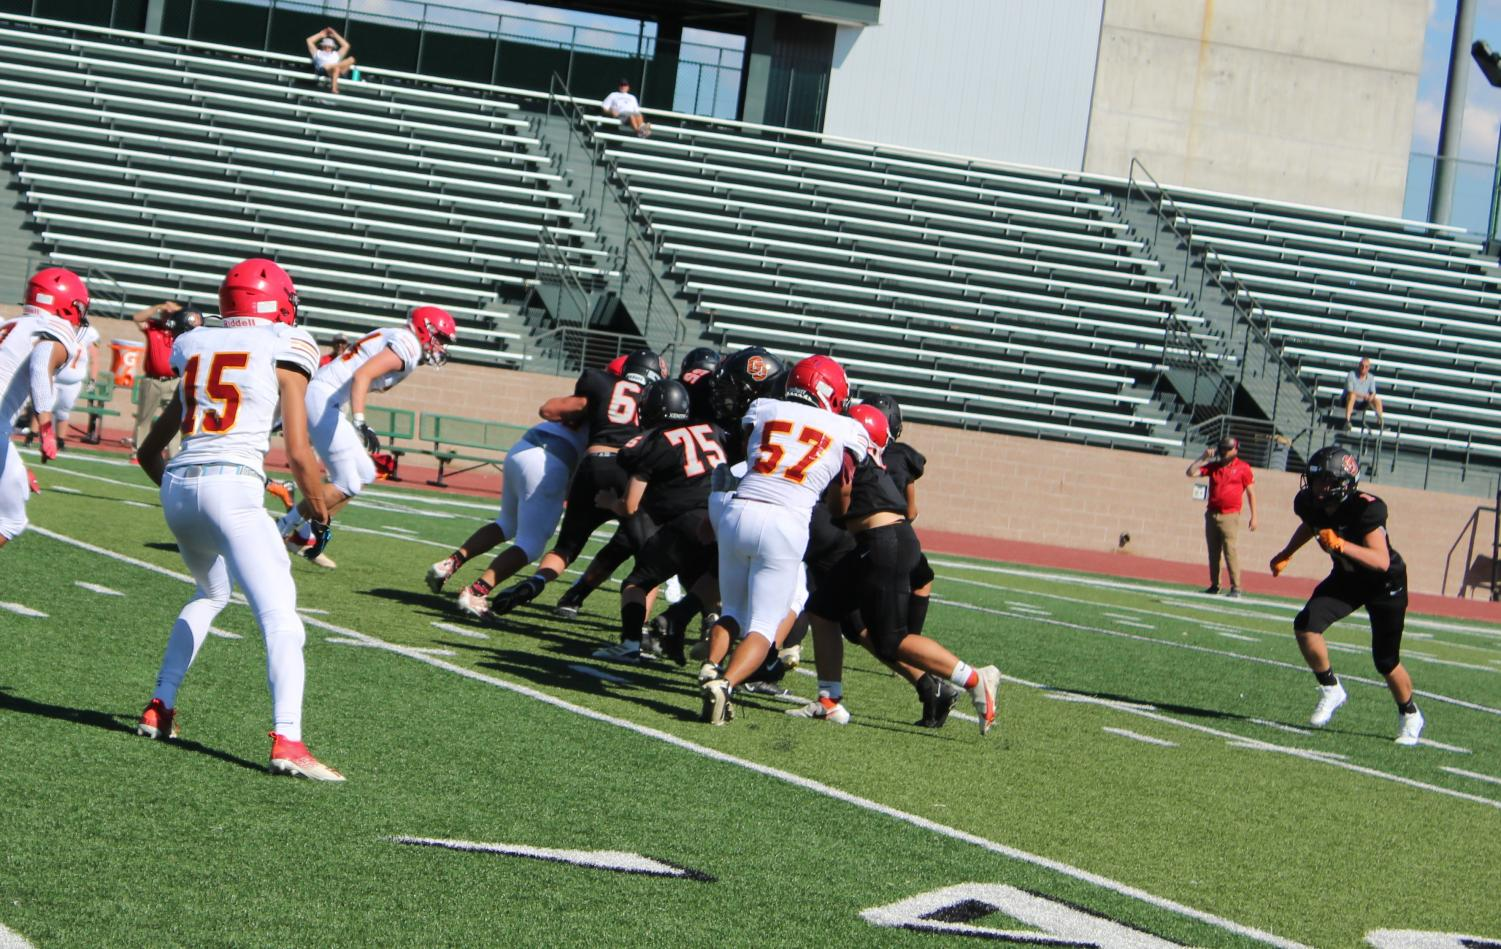 GJHS football team loses to Coronado in the first game of the season